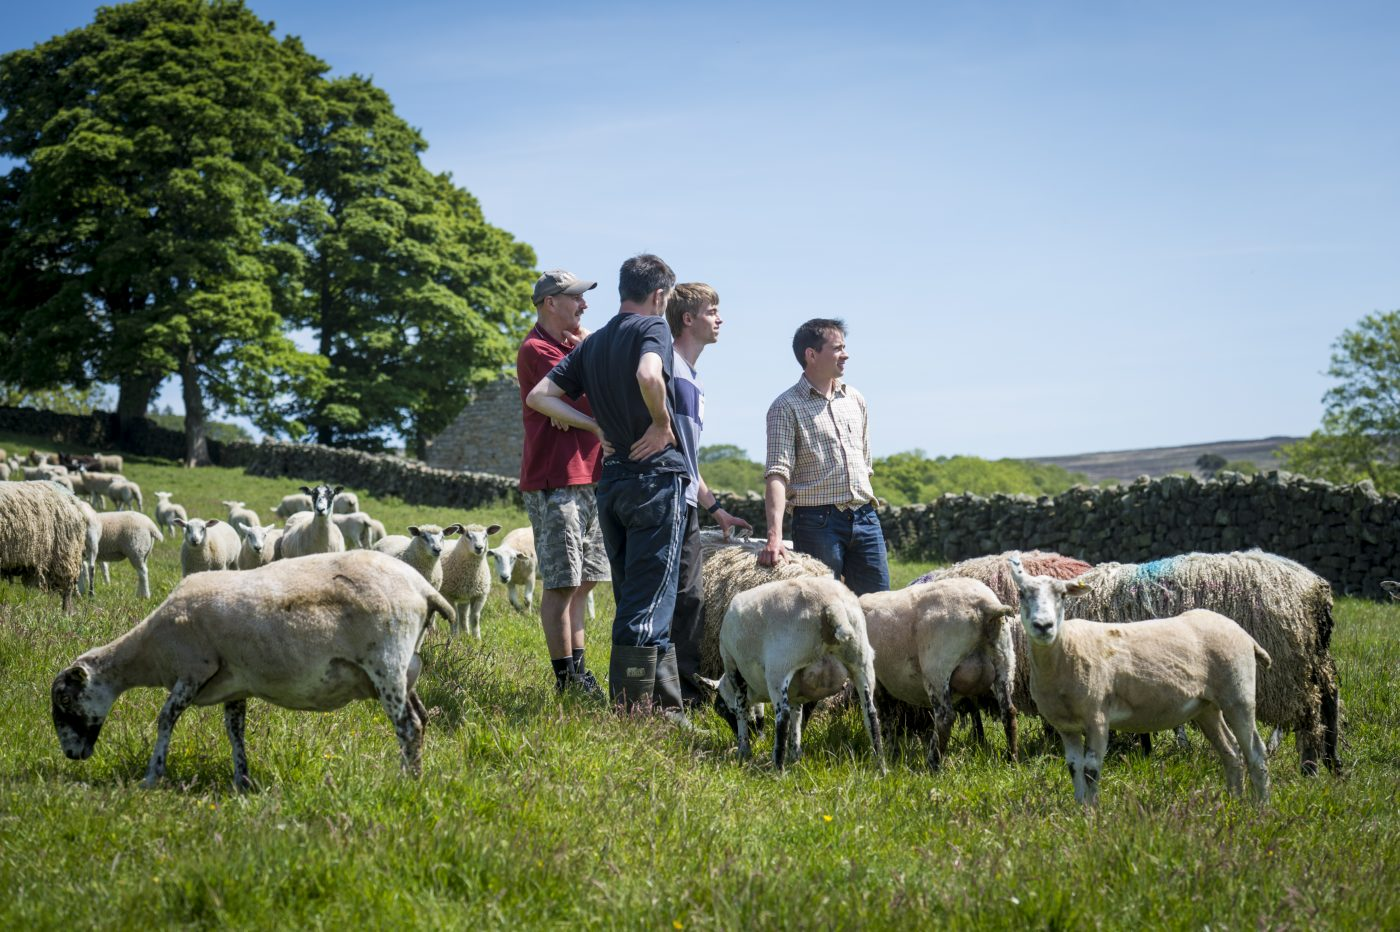 Robin Asquith and team in field with sheep